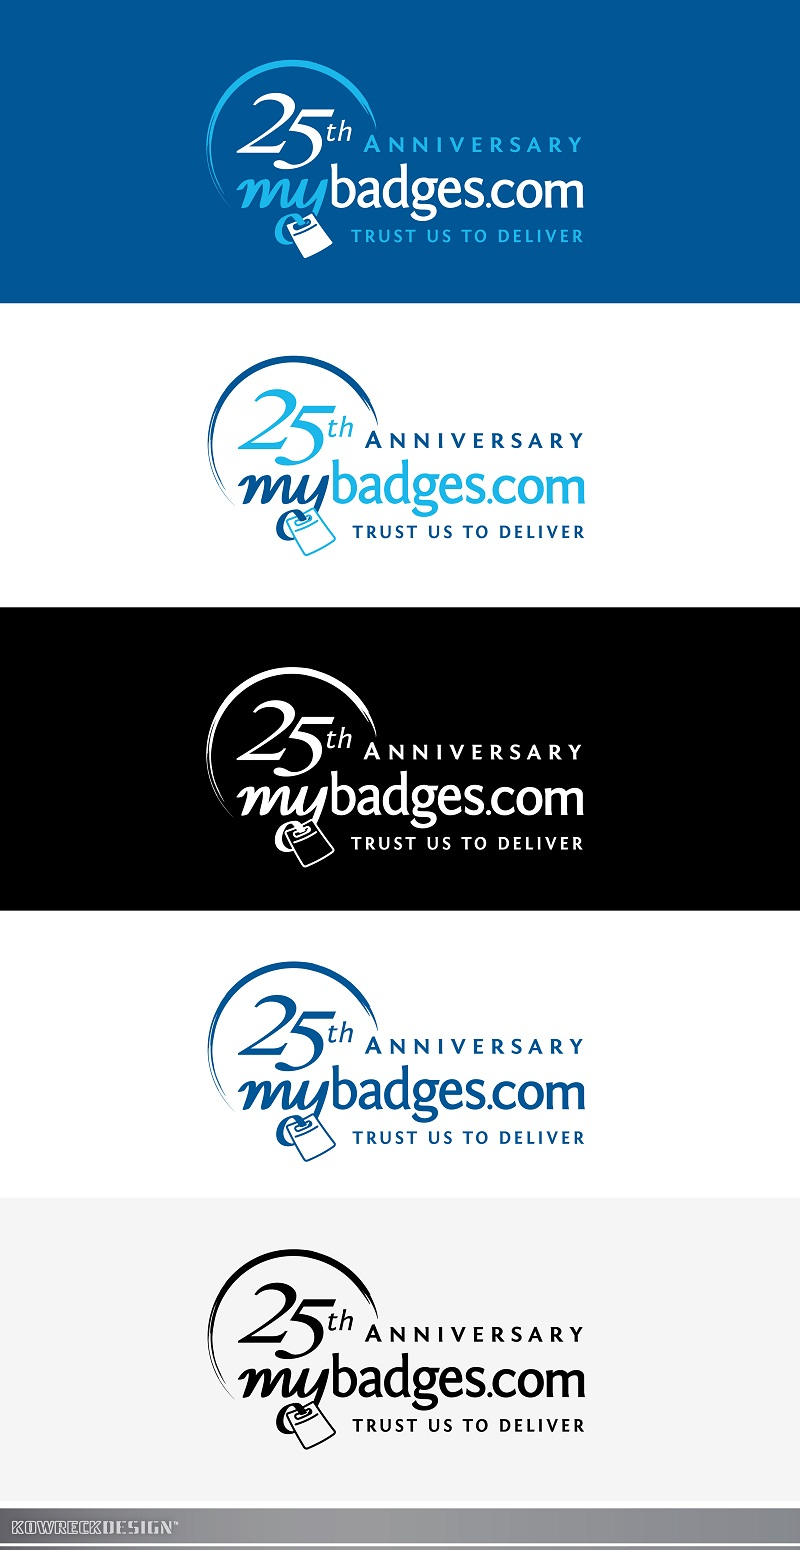 Logo Design by kowreck - Entry No. 93 in the Logo Design Contest 25th Anniversary Logo Design Wanted for MyBadges.com.